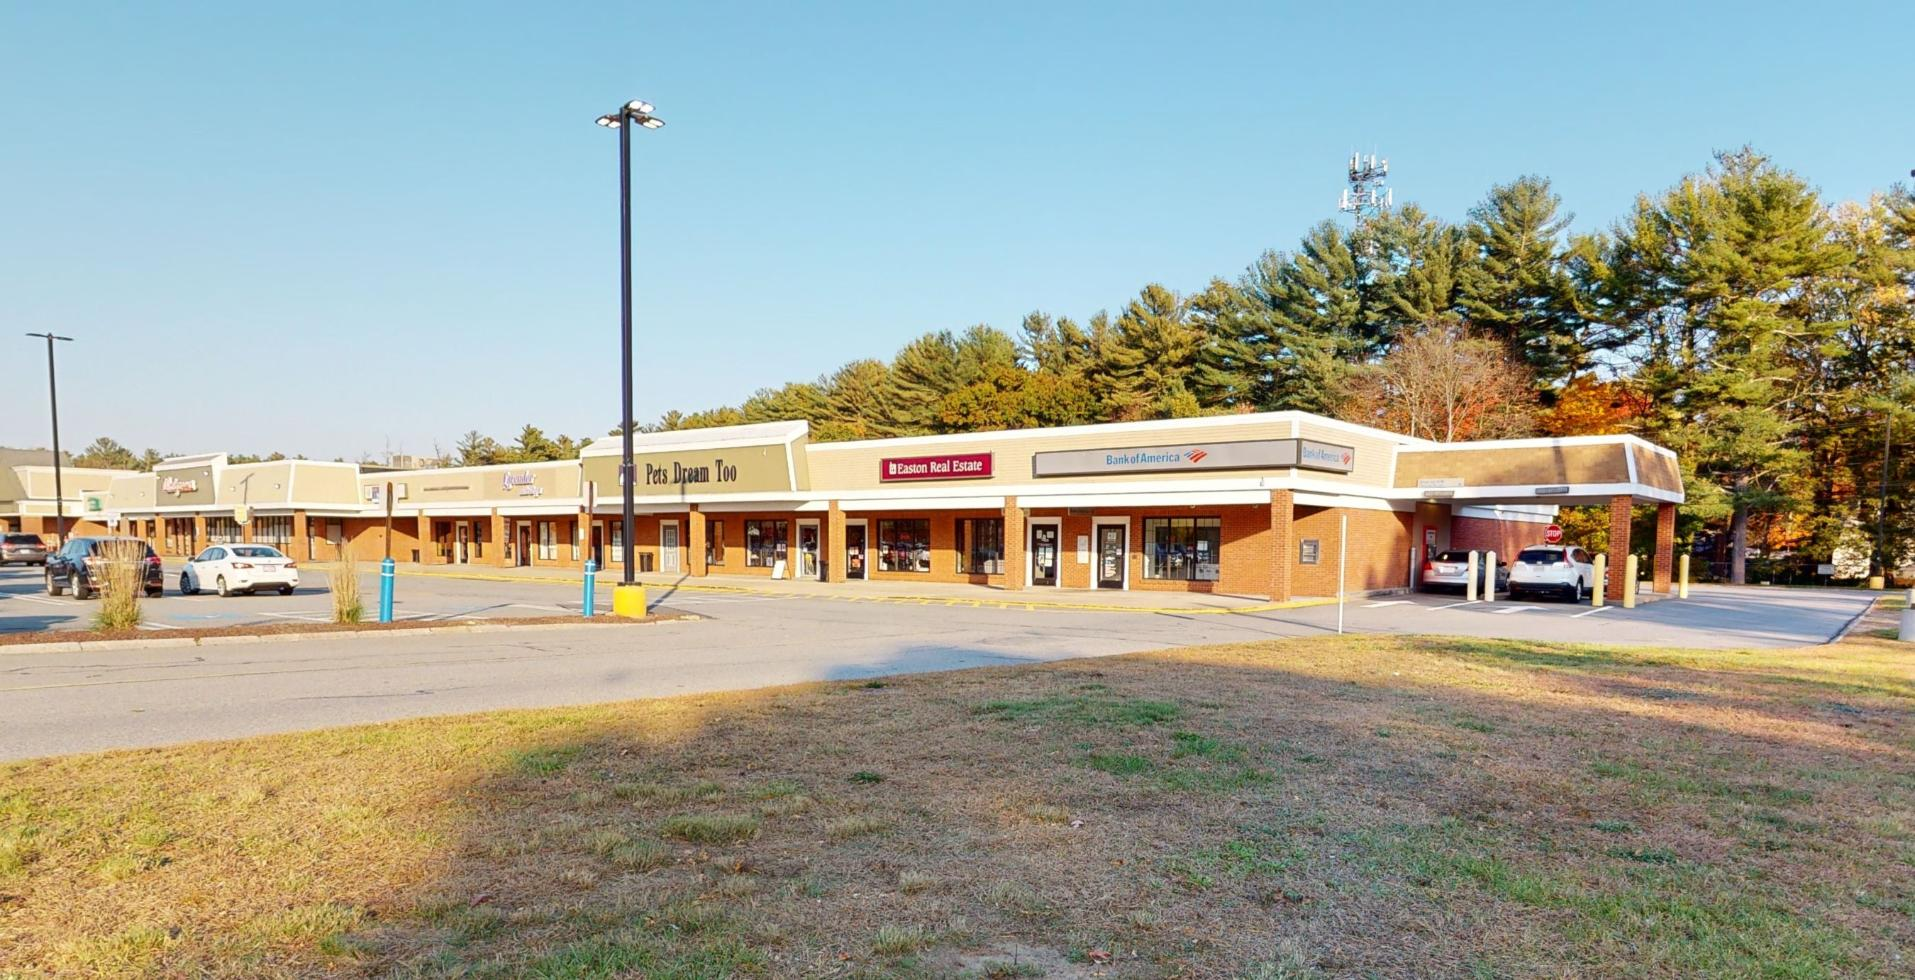 Bank of America financial center with drive-thru ATM | 692 Depot St, Easton, MA 02356